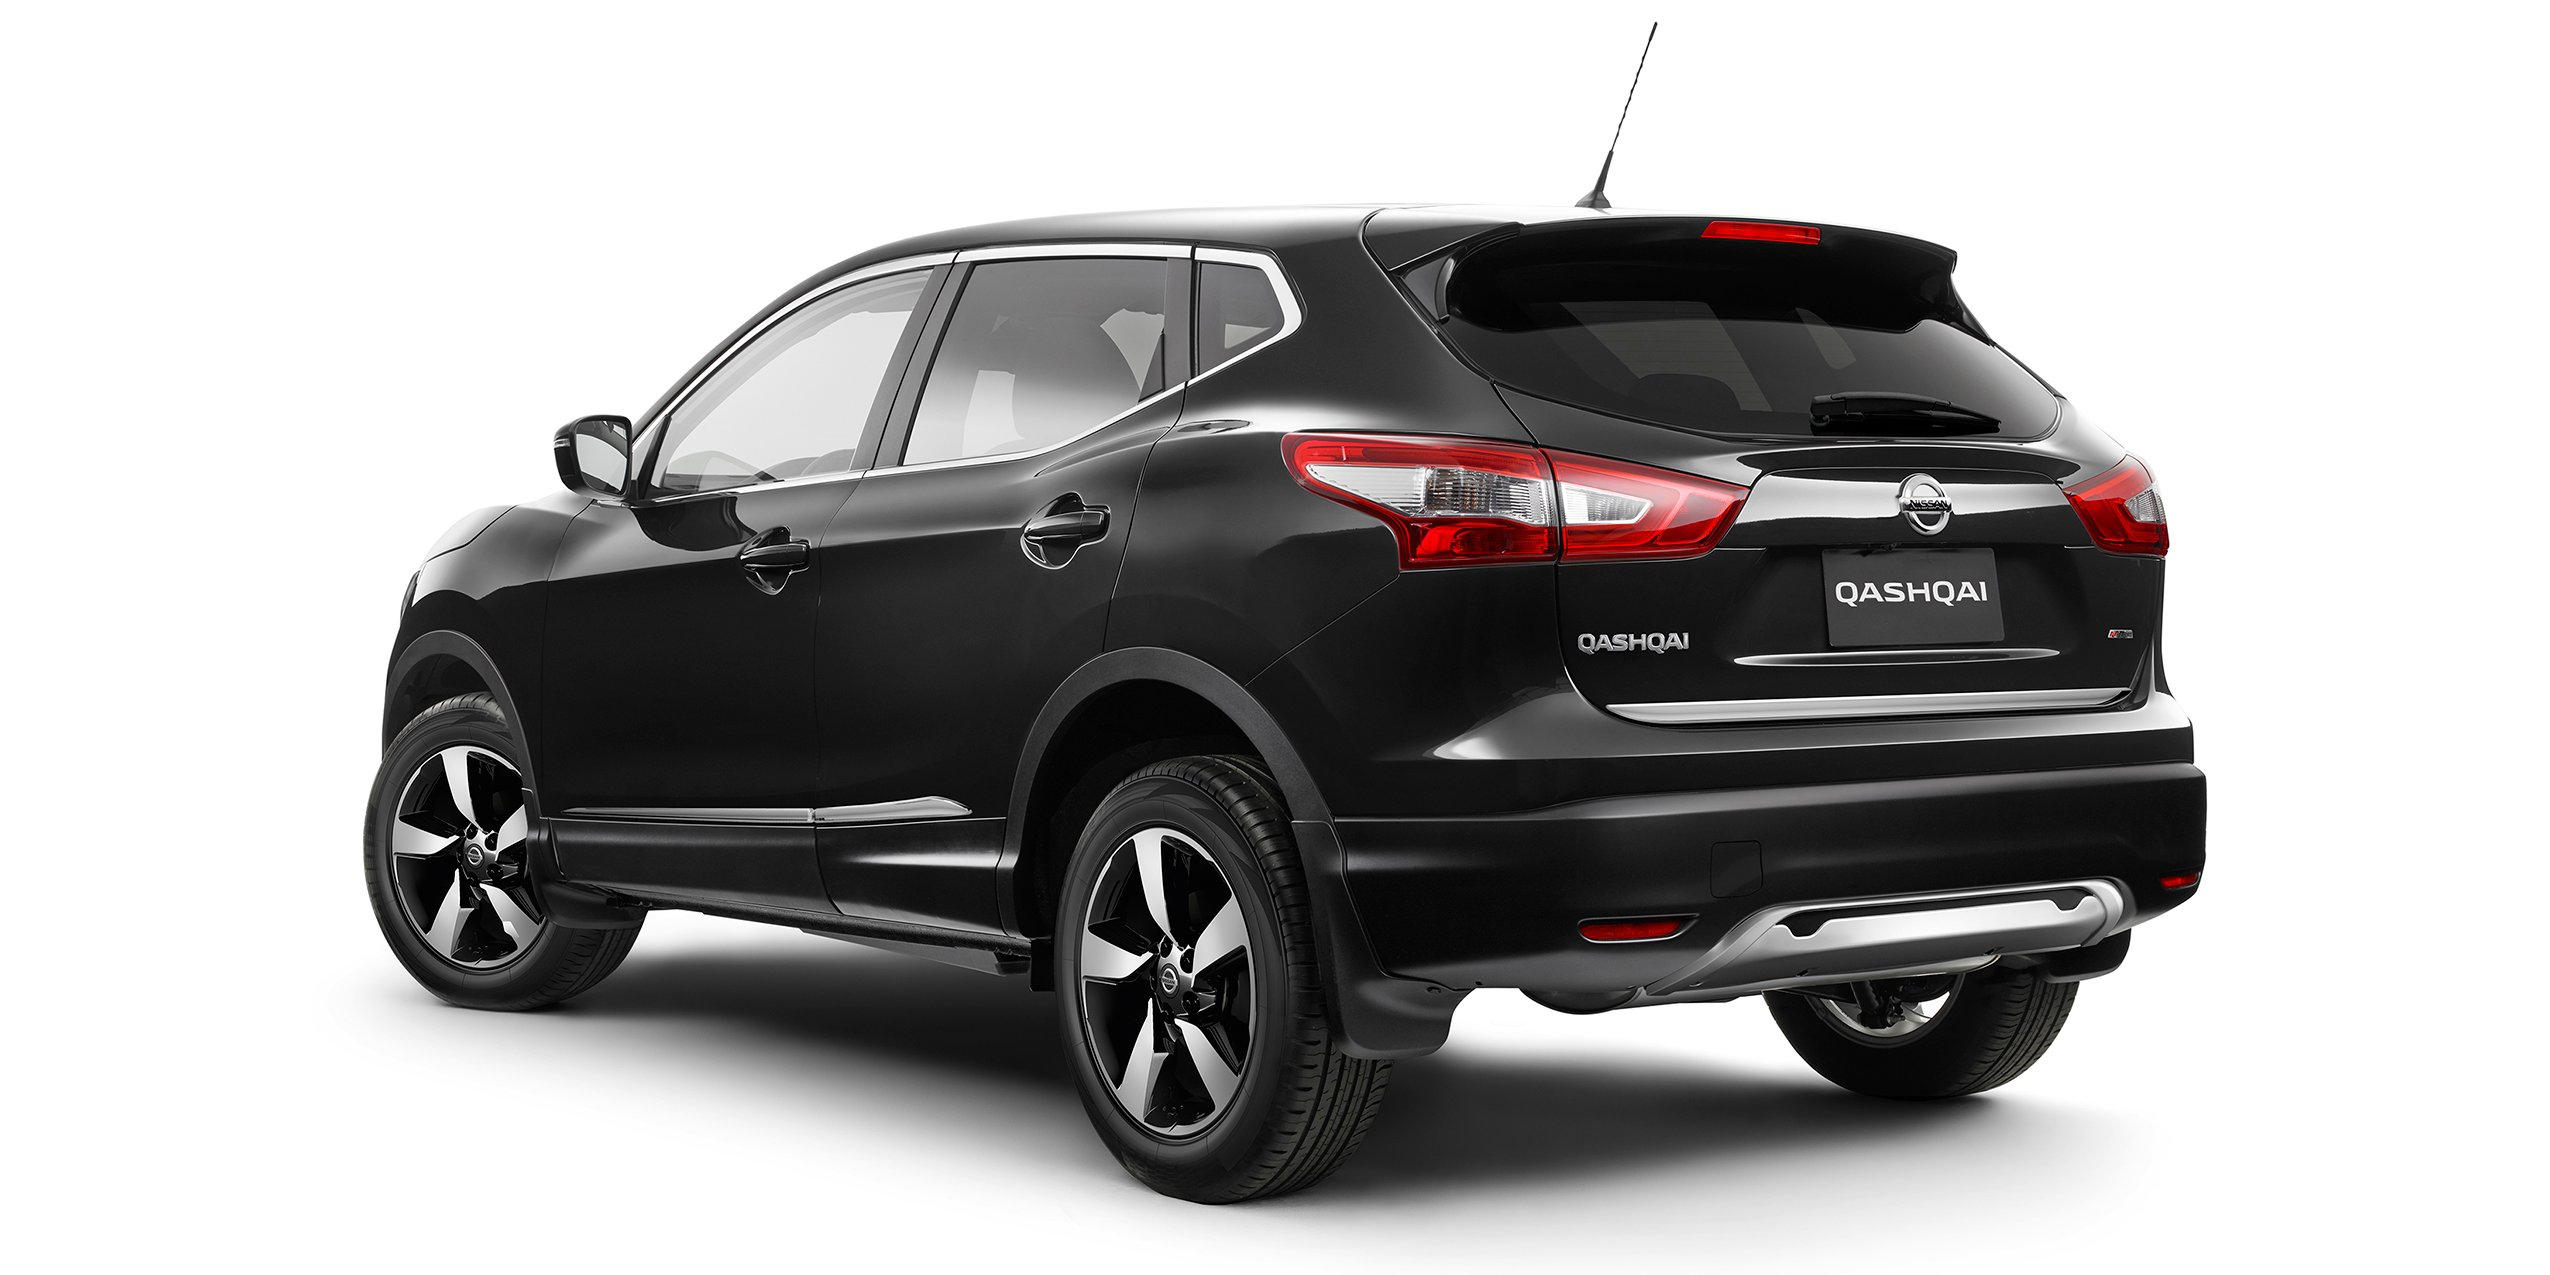 nissan qashqai n sport special edition adds value sharp. Black Bedroom Furniture Sets. Home Design Ideas